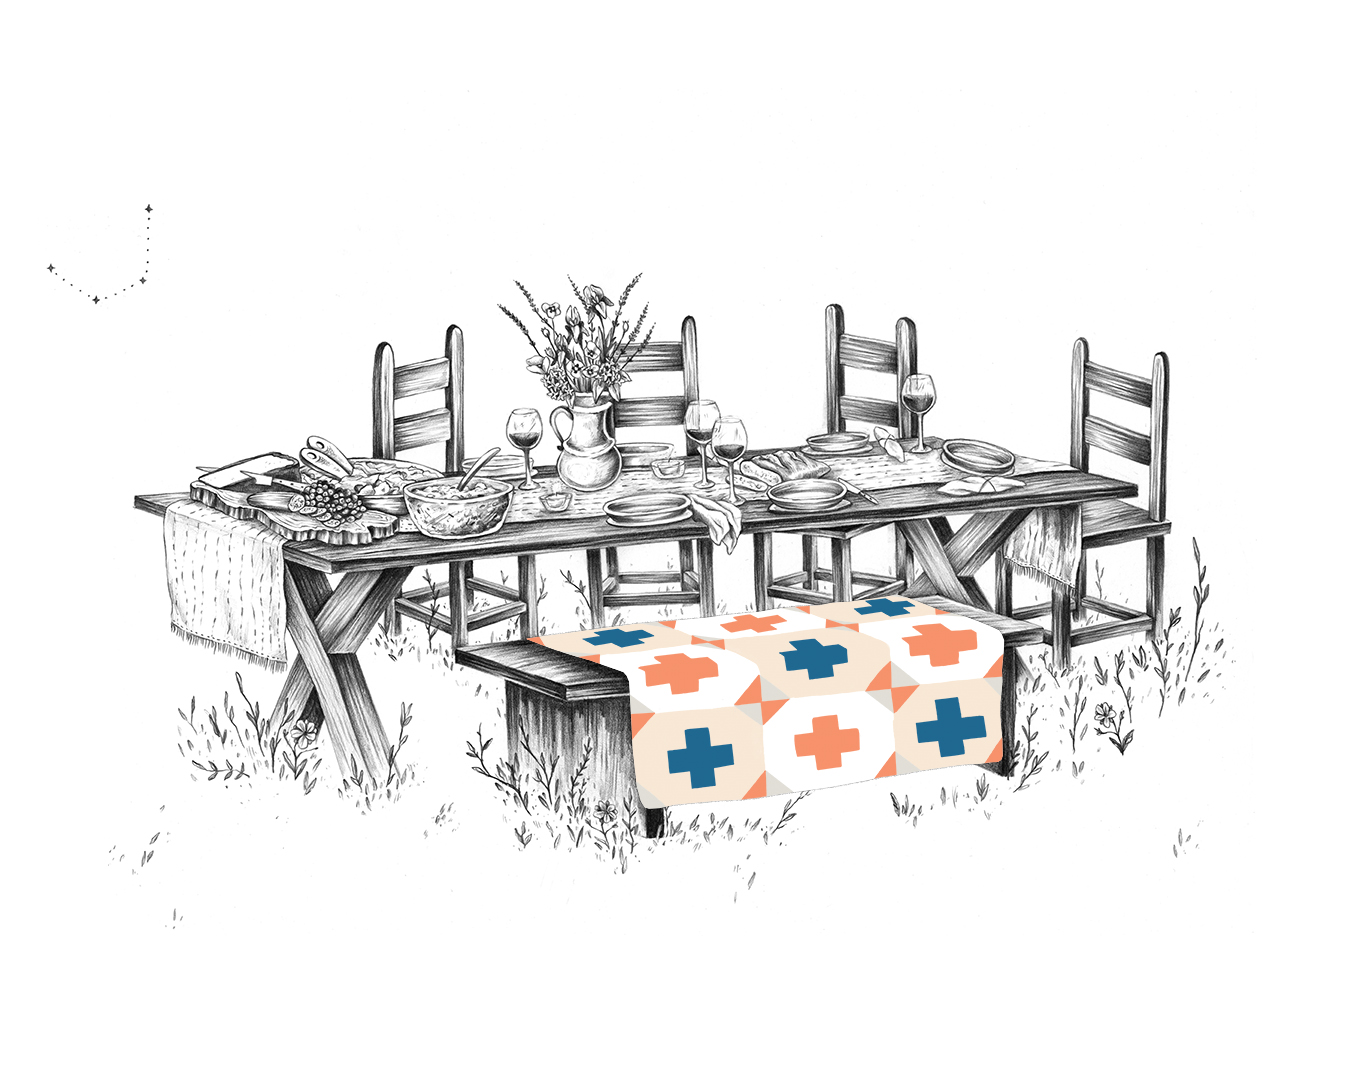 Table with a colored pattern